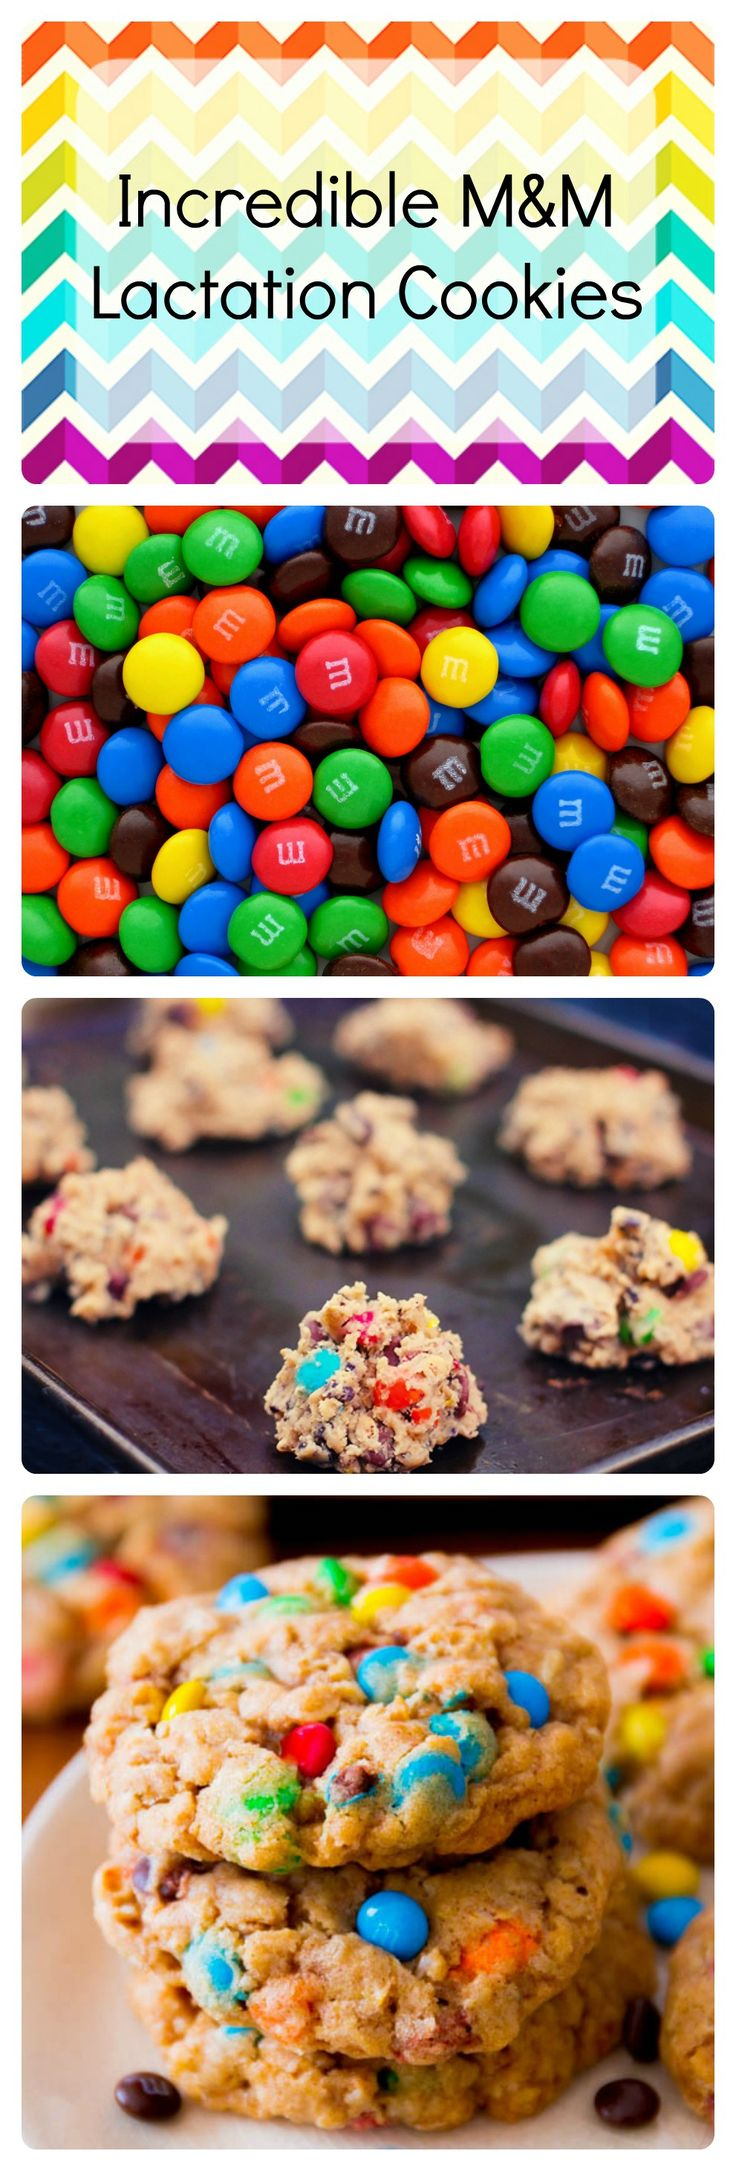 Incredible M&M lactation cookies to give your milk supply a needed boost. Visit http://steel-cut-oats.stfi.re for more recipes!